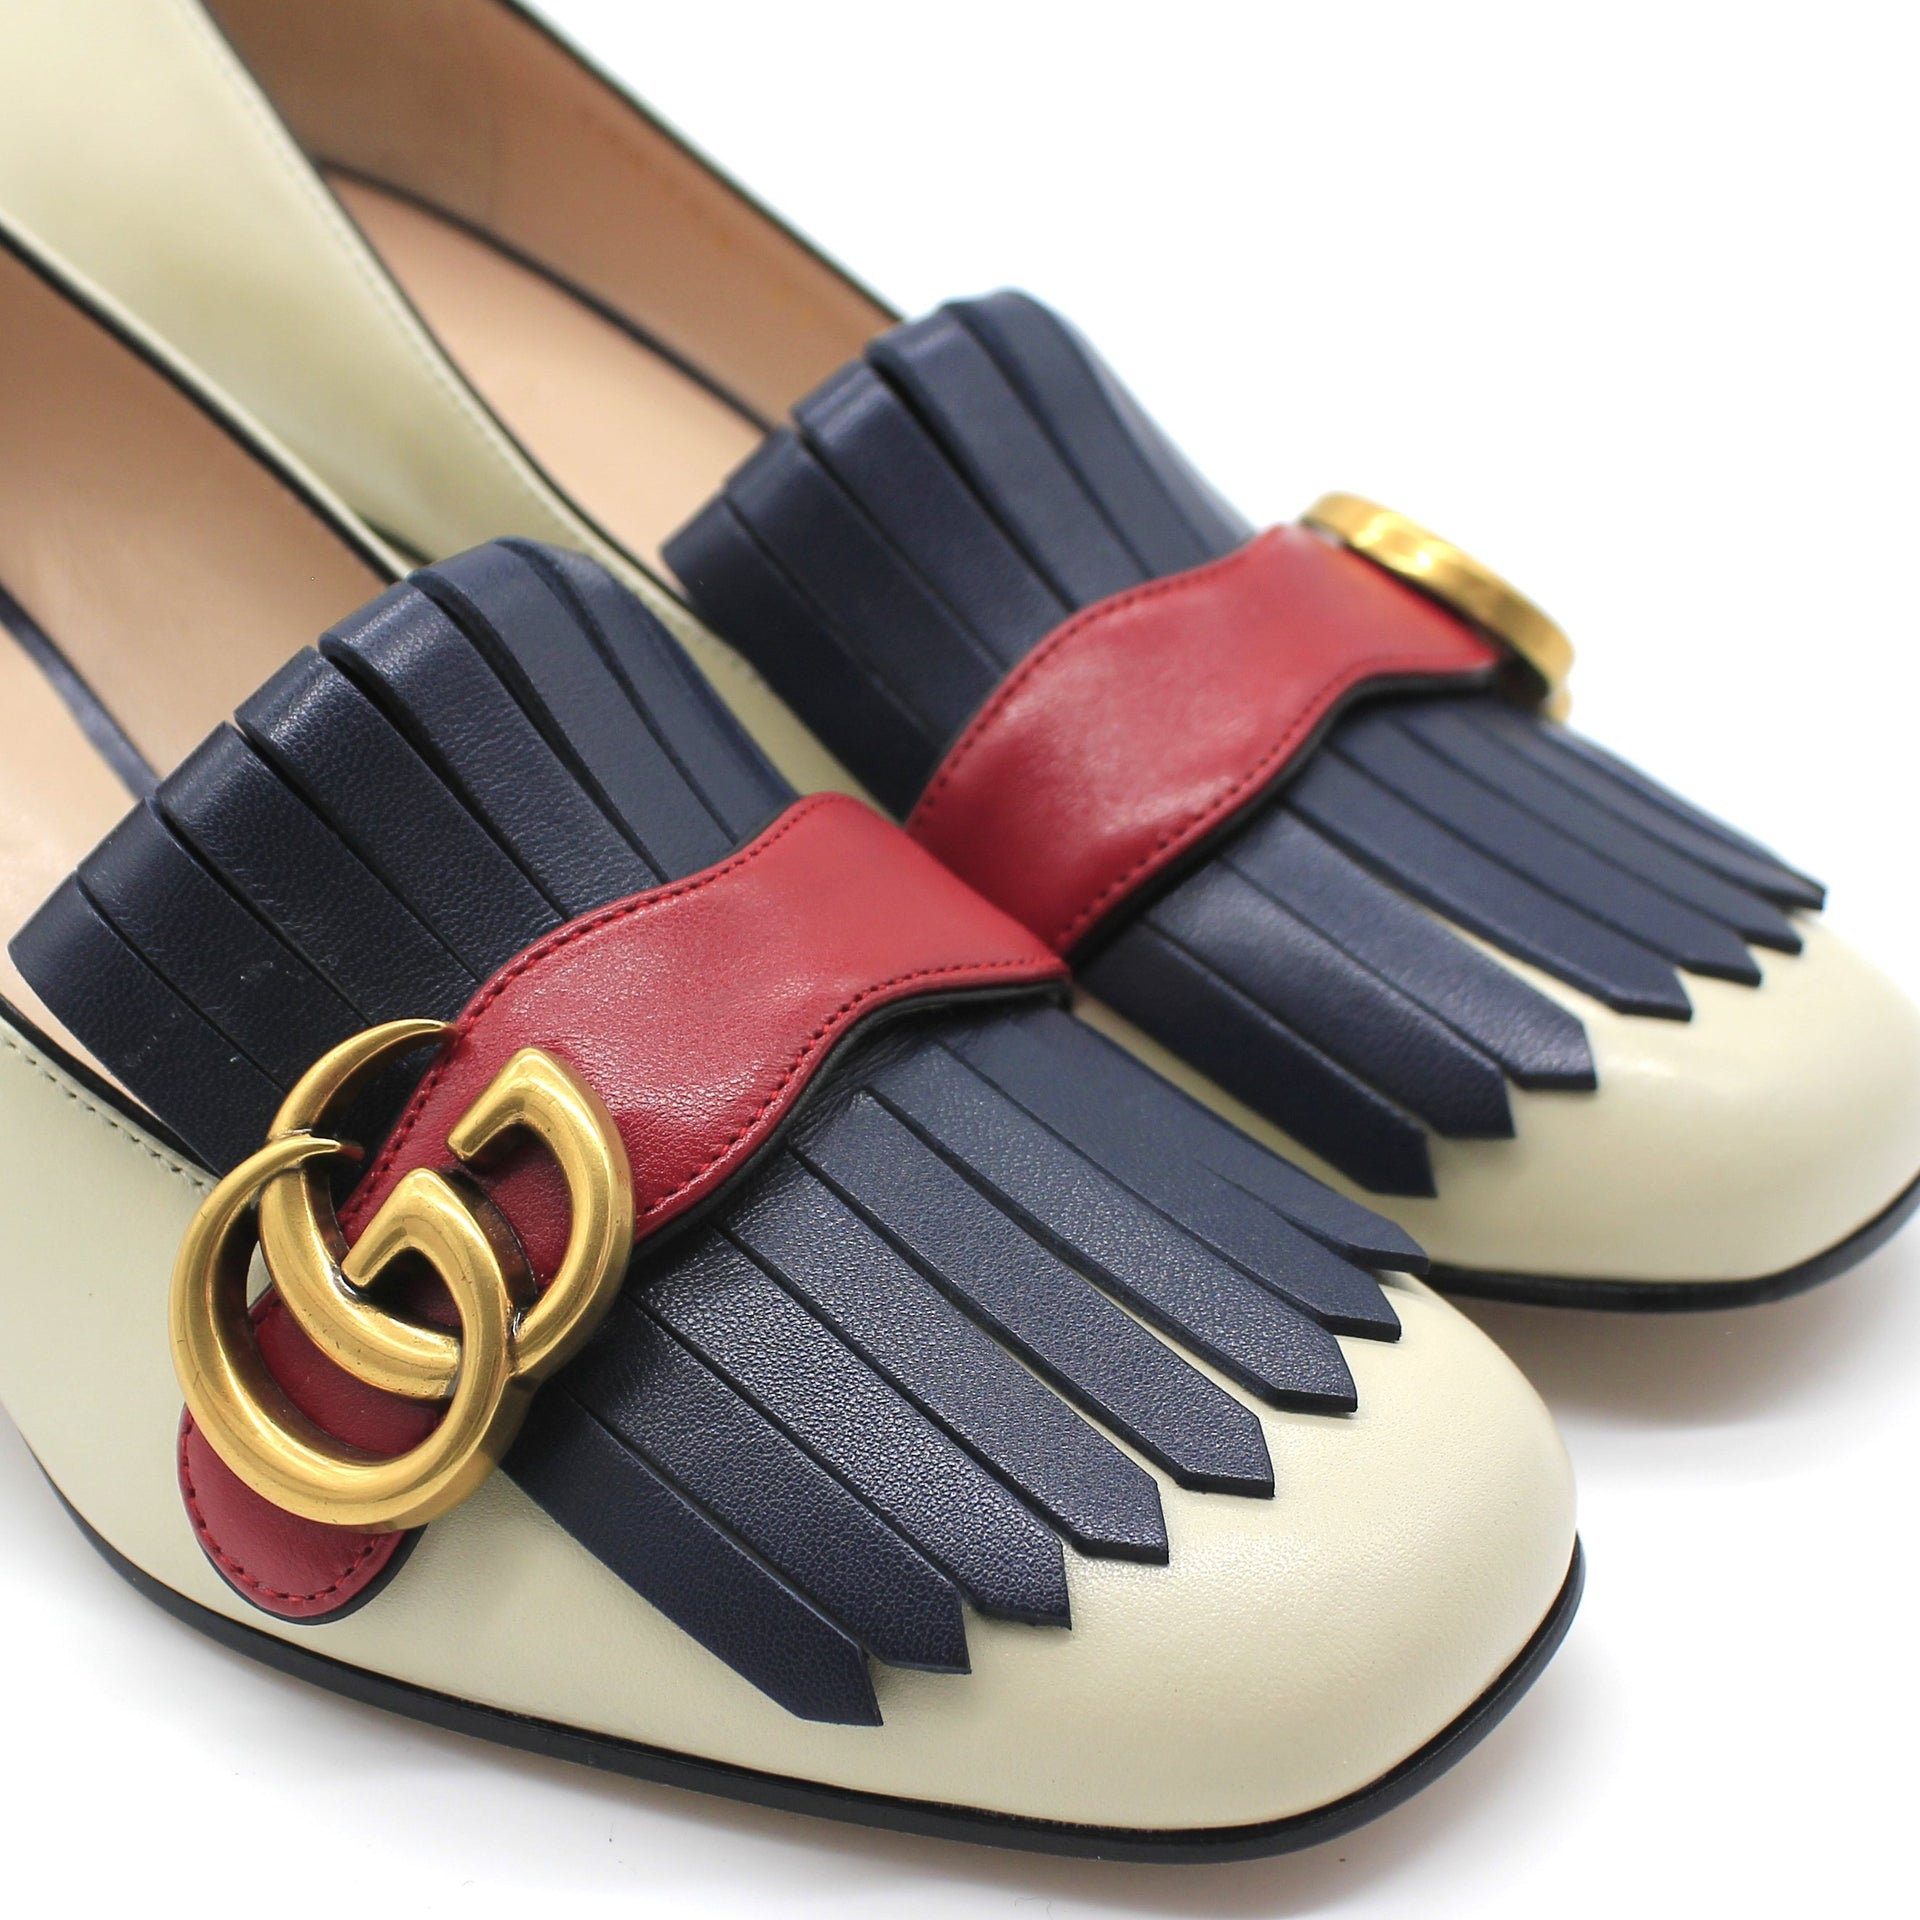 Marmont fringed logo-embellished leather pumps